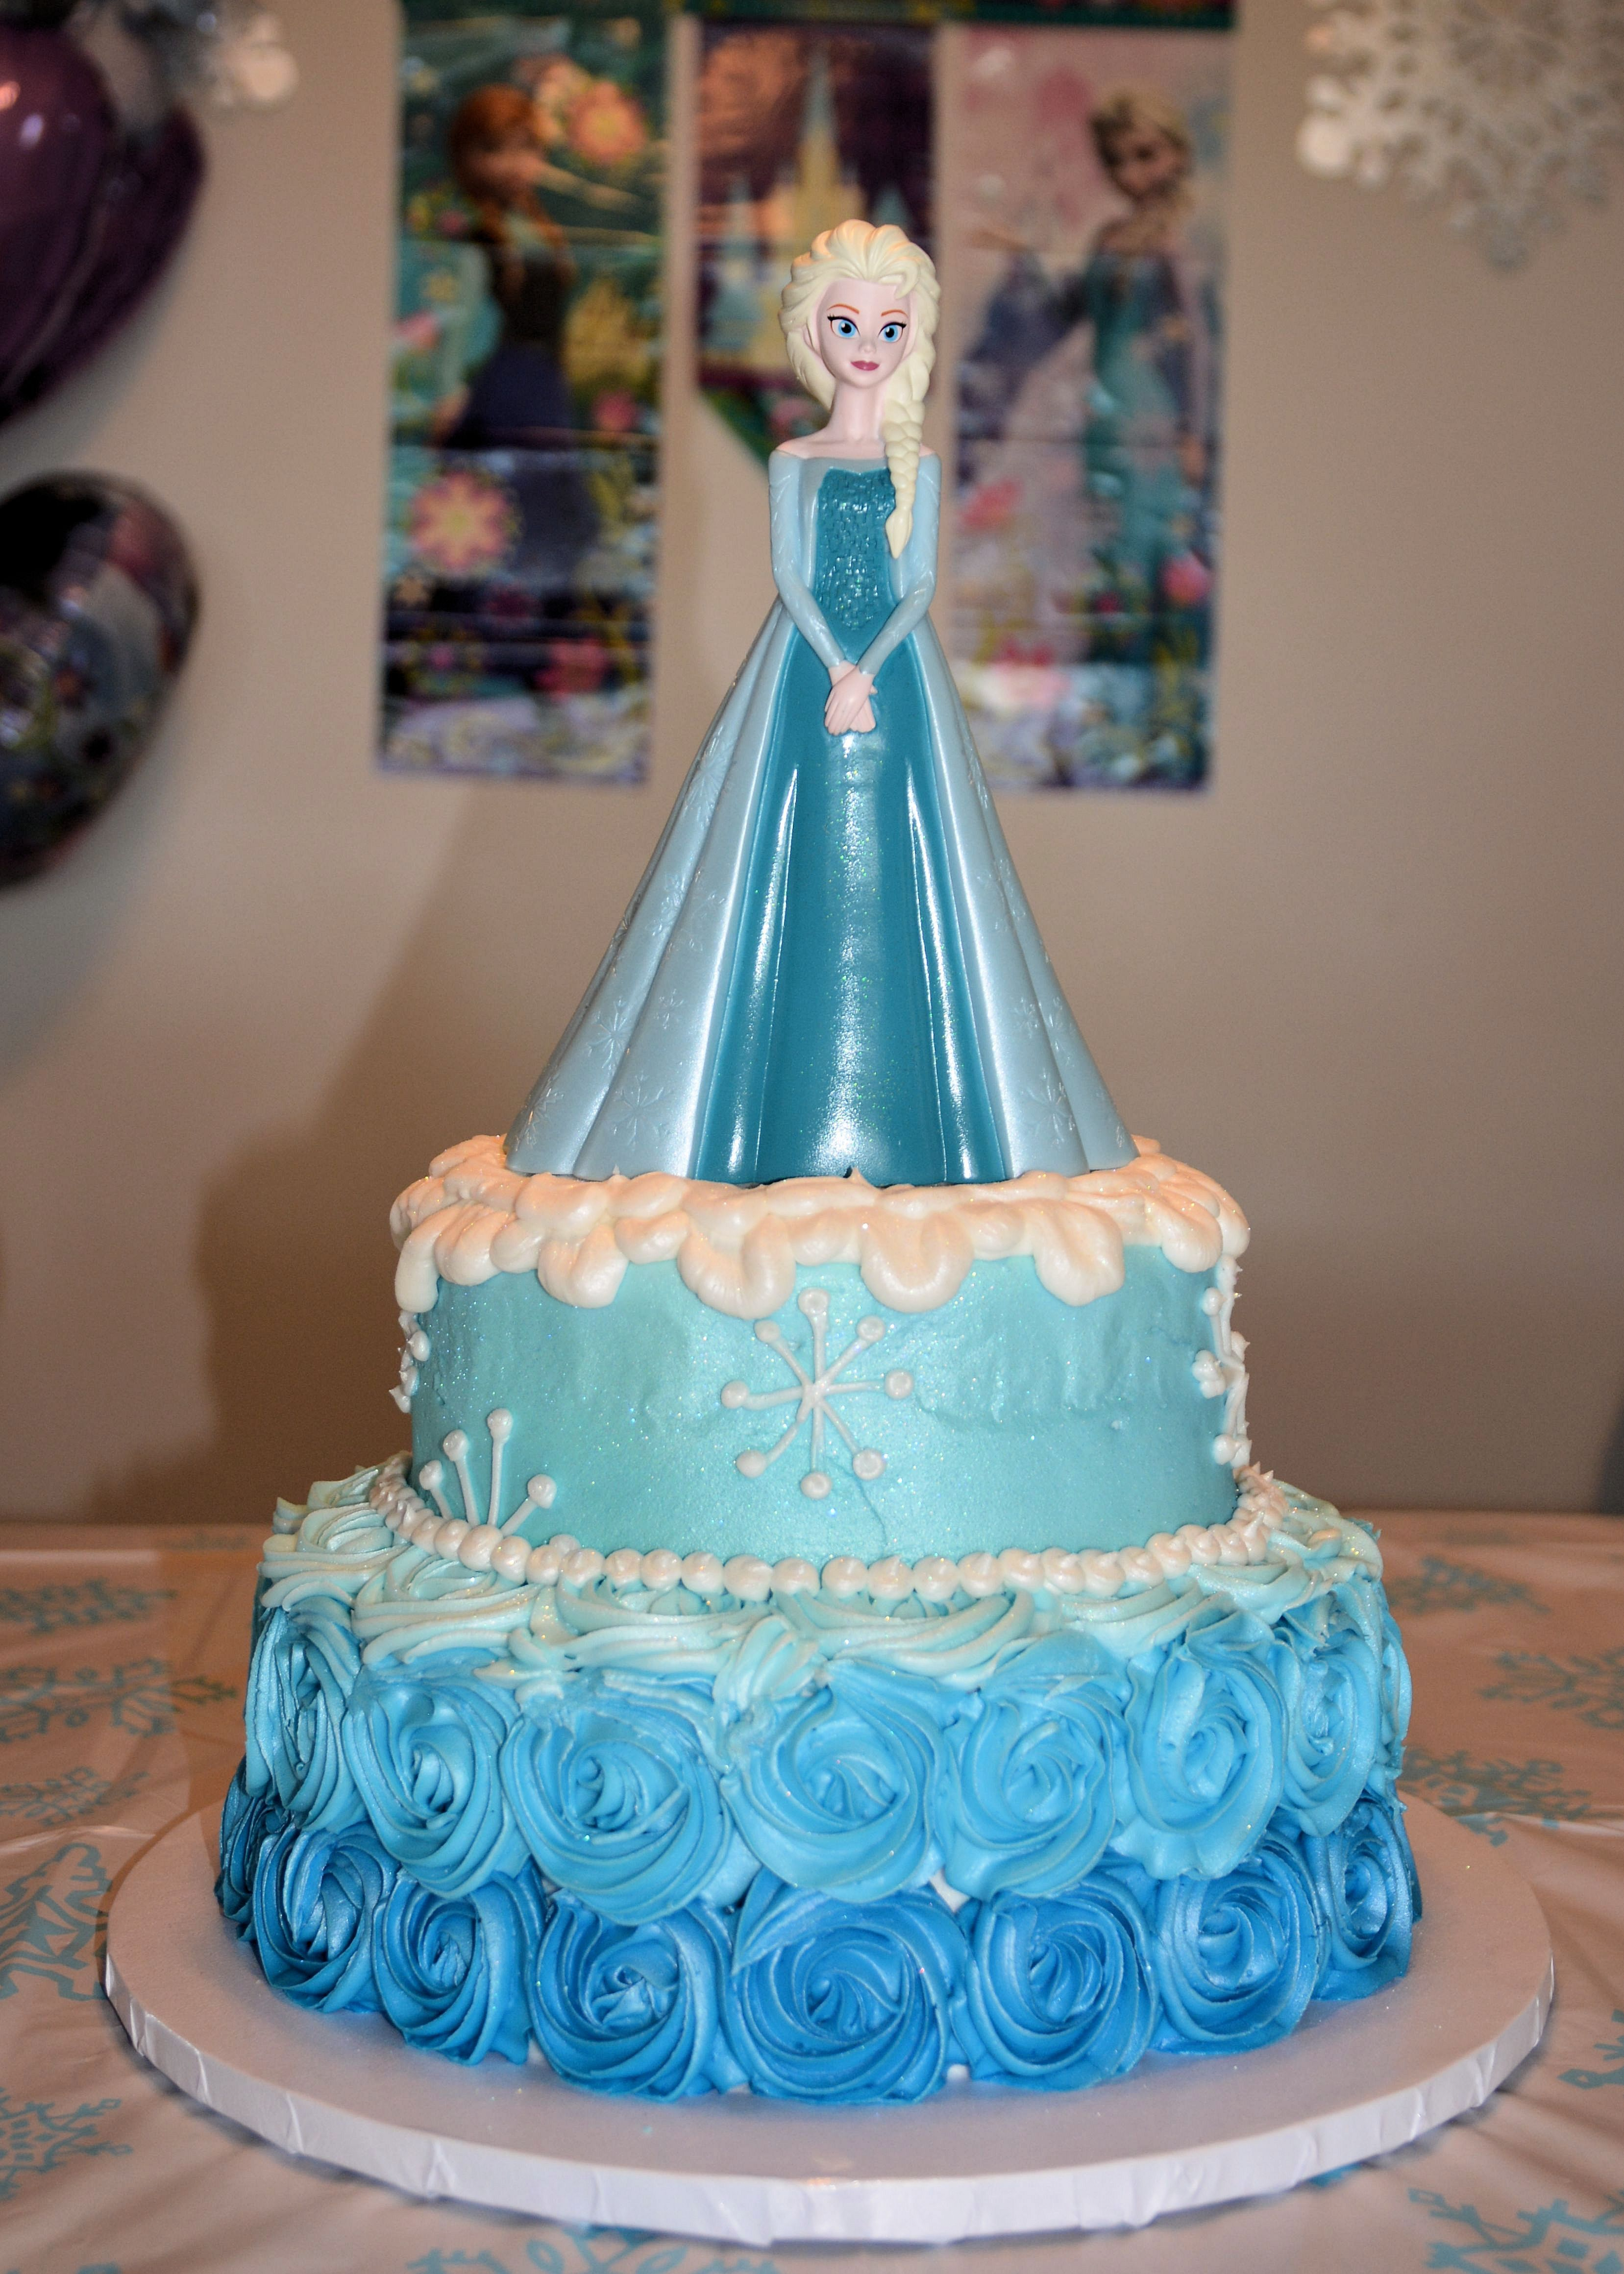 Frozen Themed Birthday Cakes Sephias 7th Birthday Party Elsa Cake Frozen Themed Party